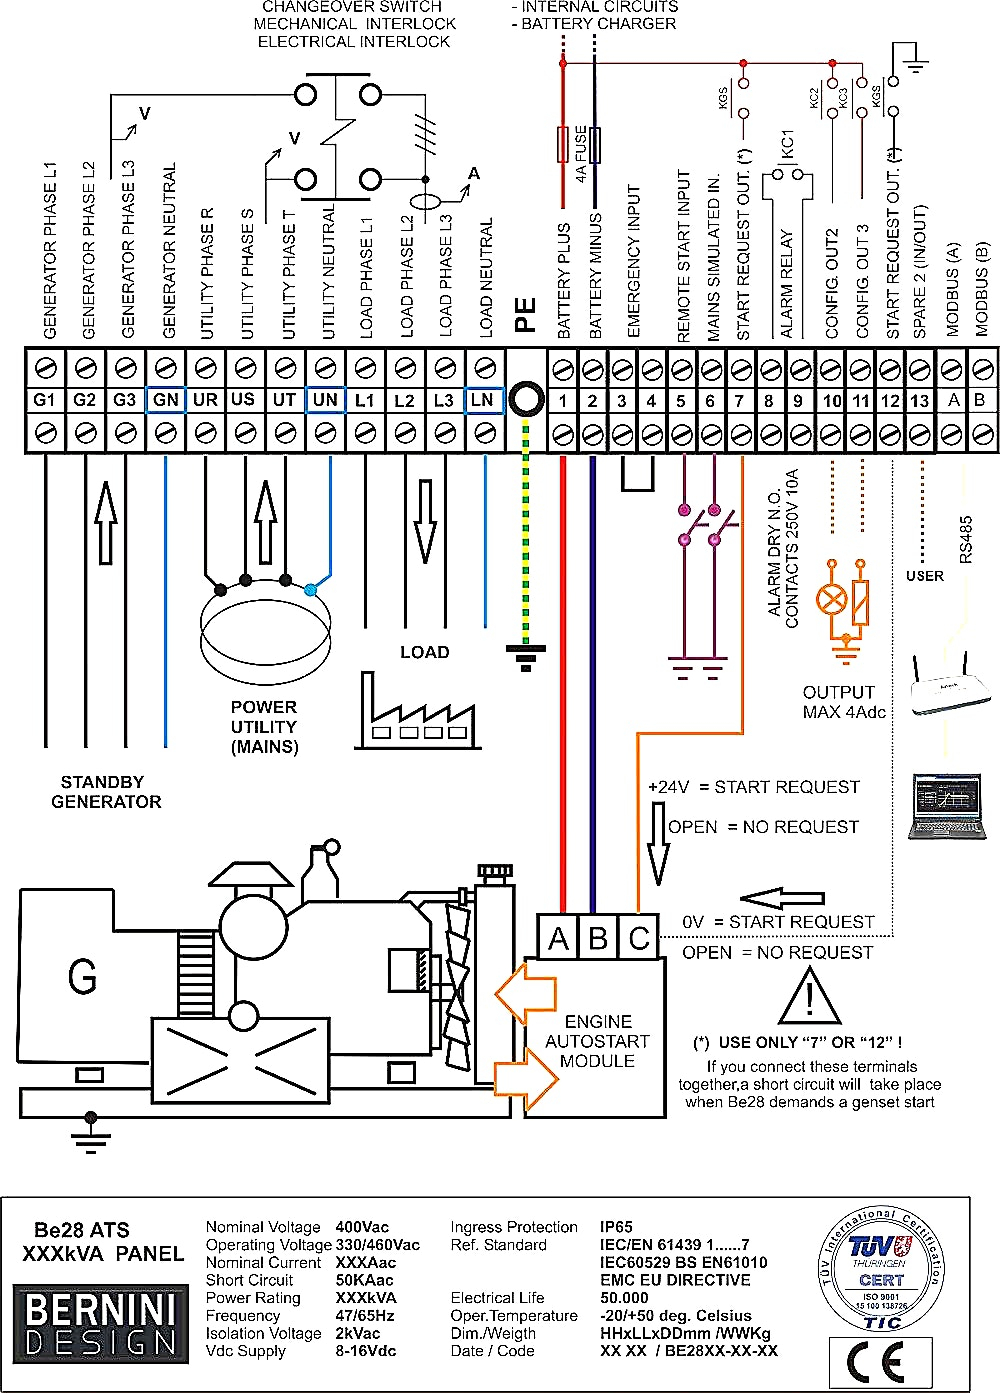 Generac Ats Wiring Diagram from wholefoodsonabudget.com